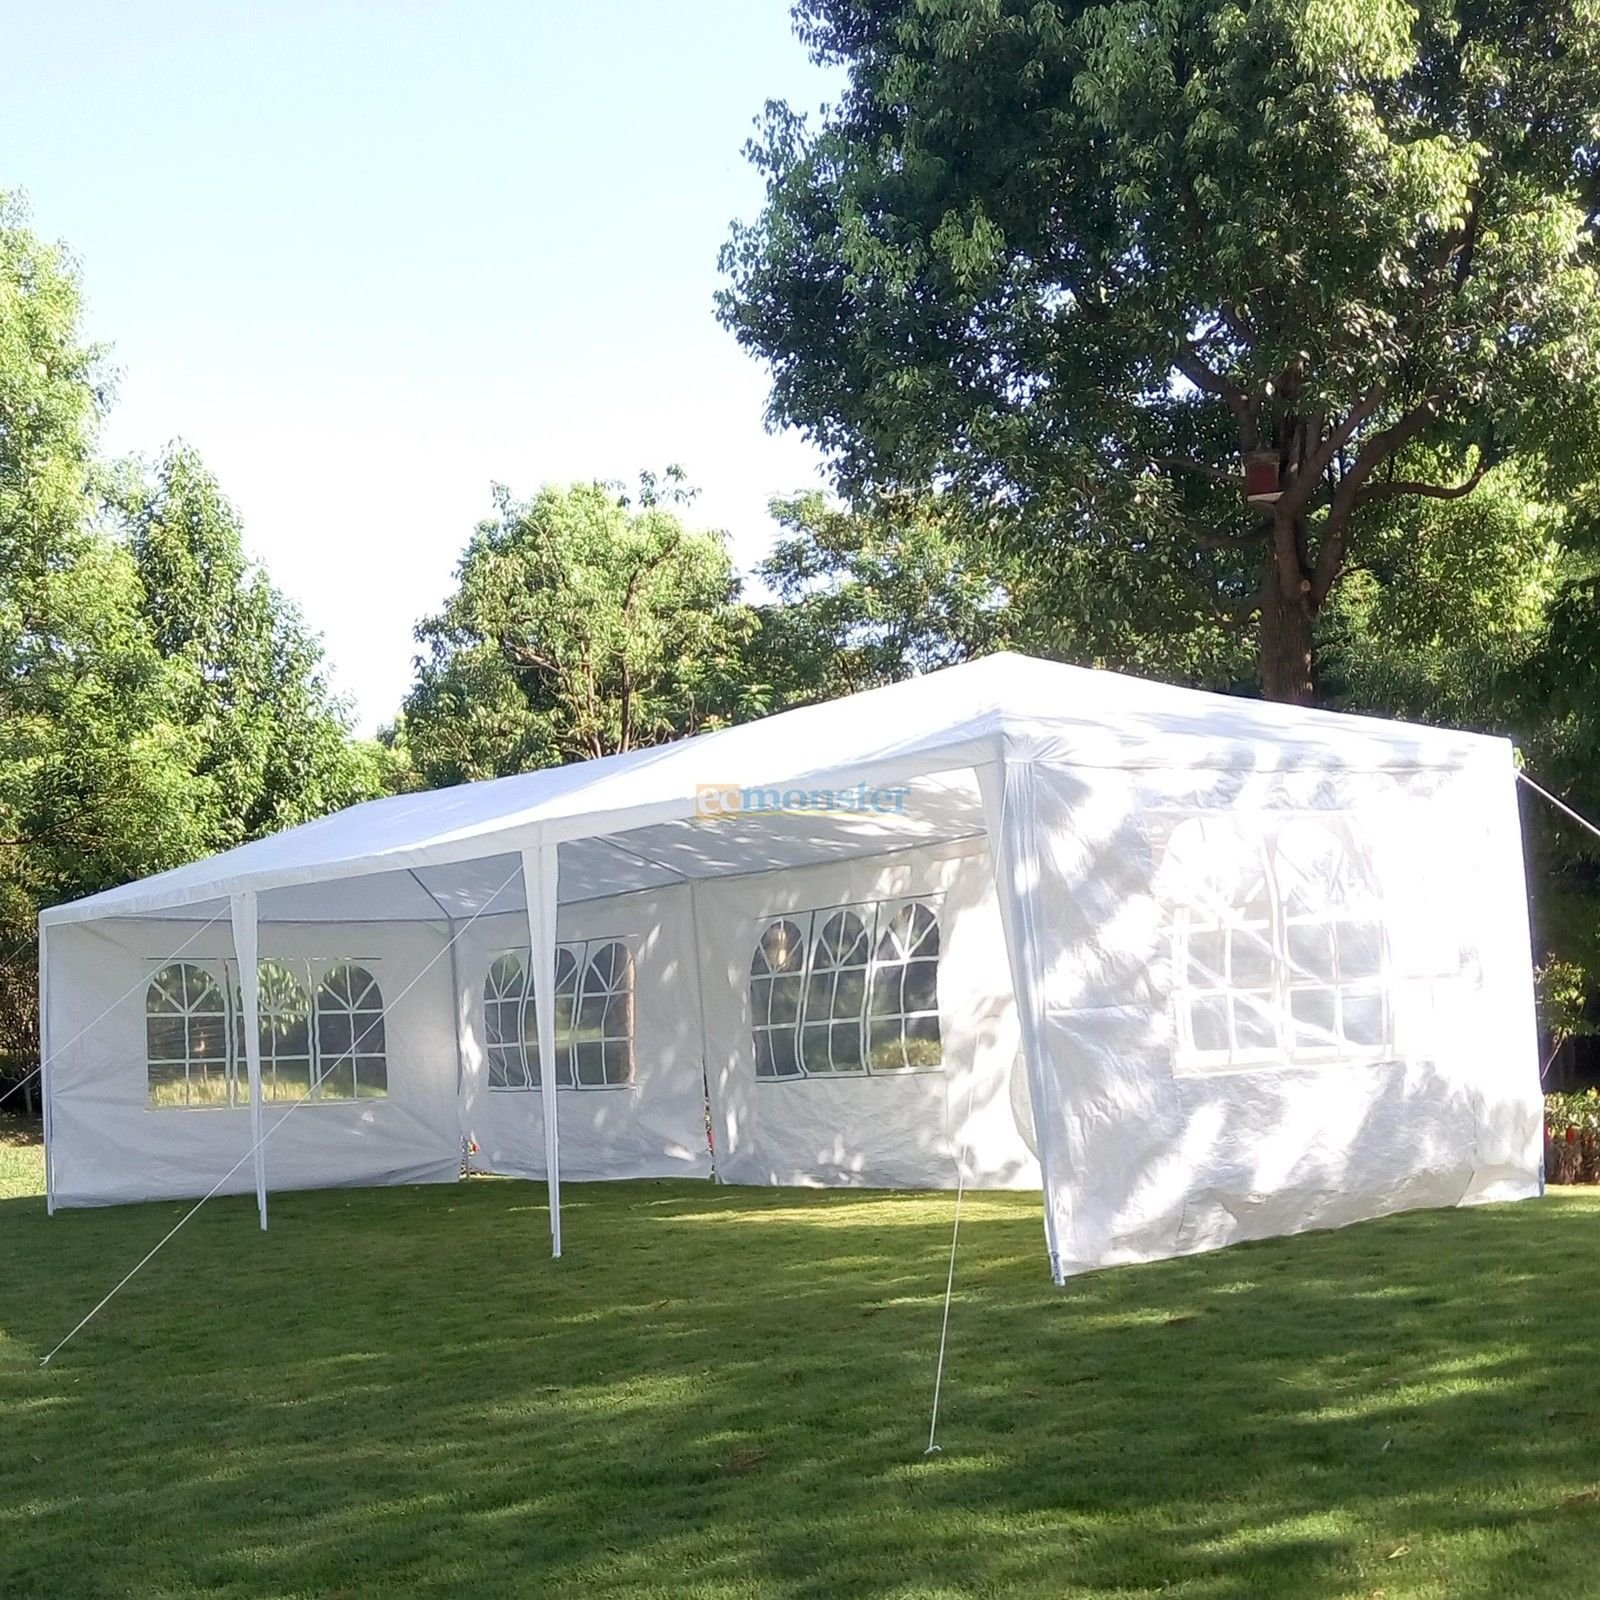 10' X 30' Canopy Outdoor Wedding Party Tent Gazebo Pavilion w/5 Walls Cover